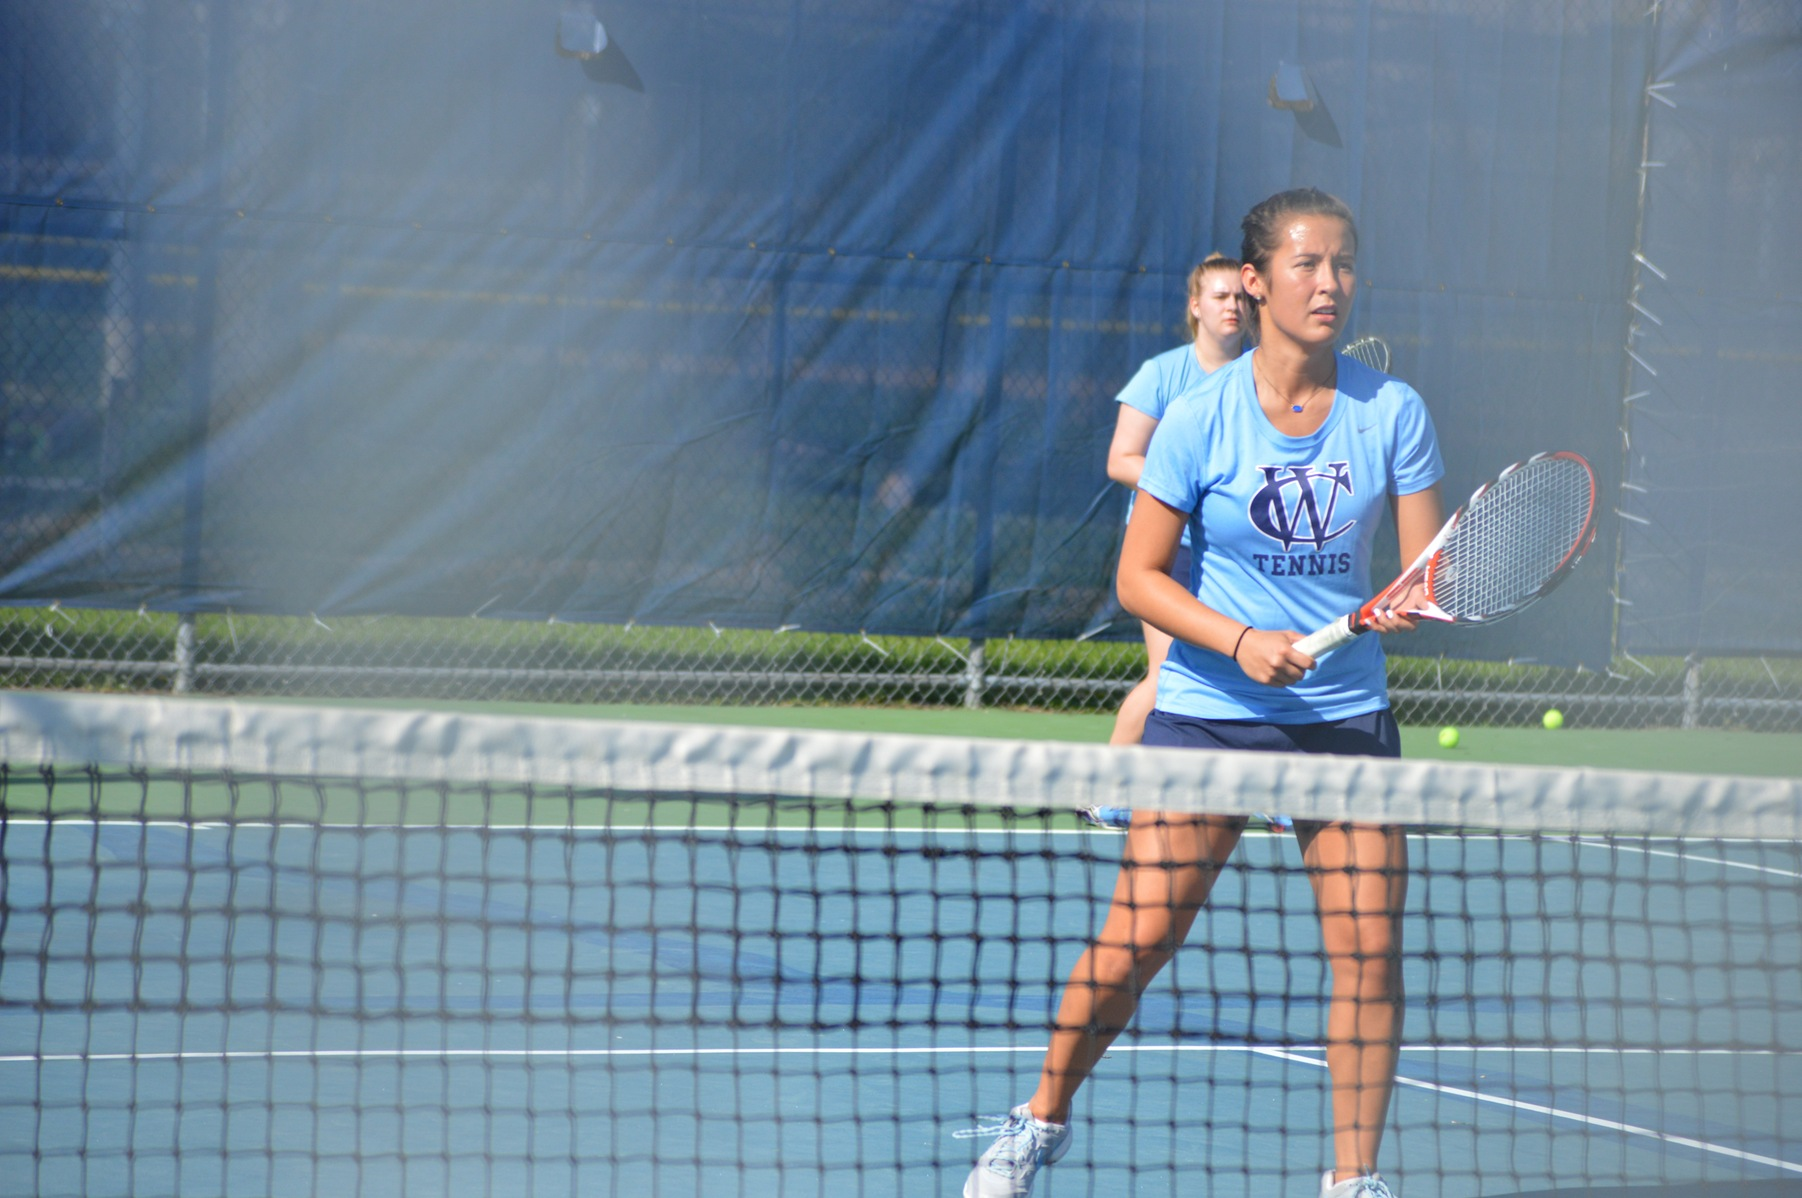 Blue Jays Fall in Tight Match with Gorlocks